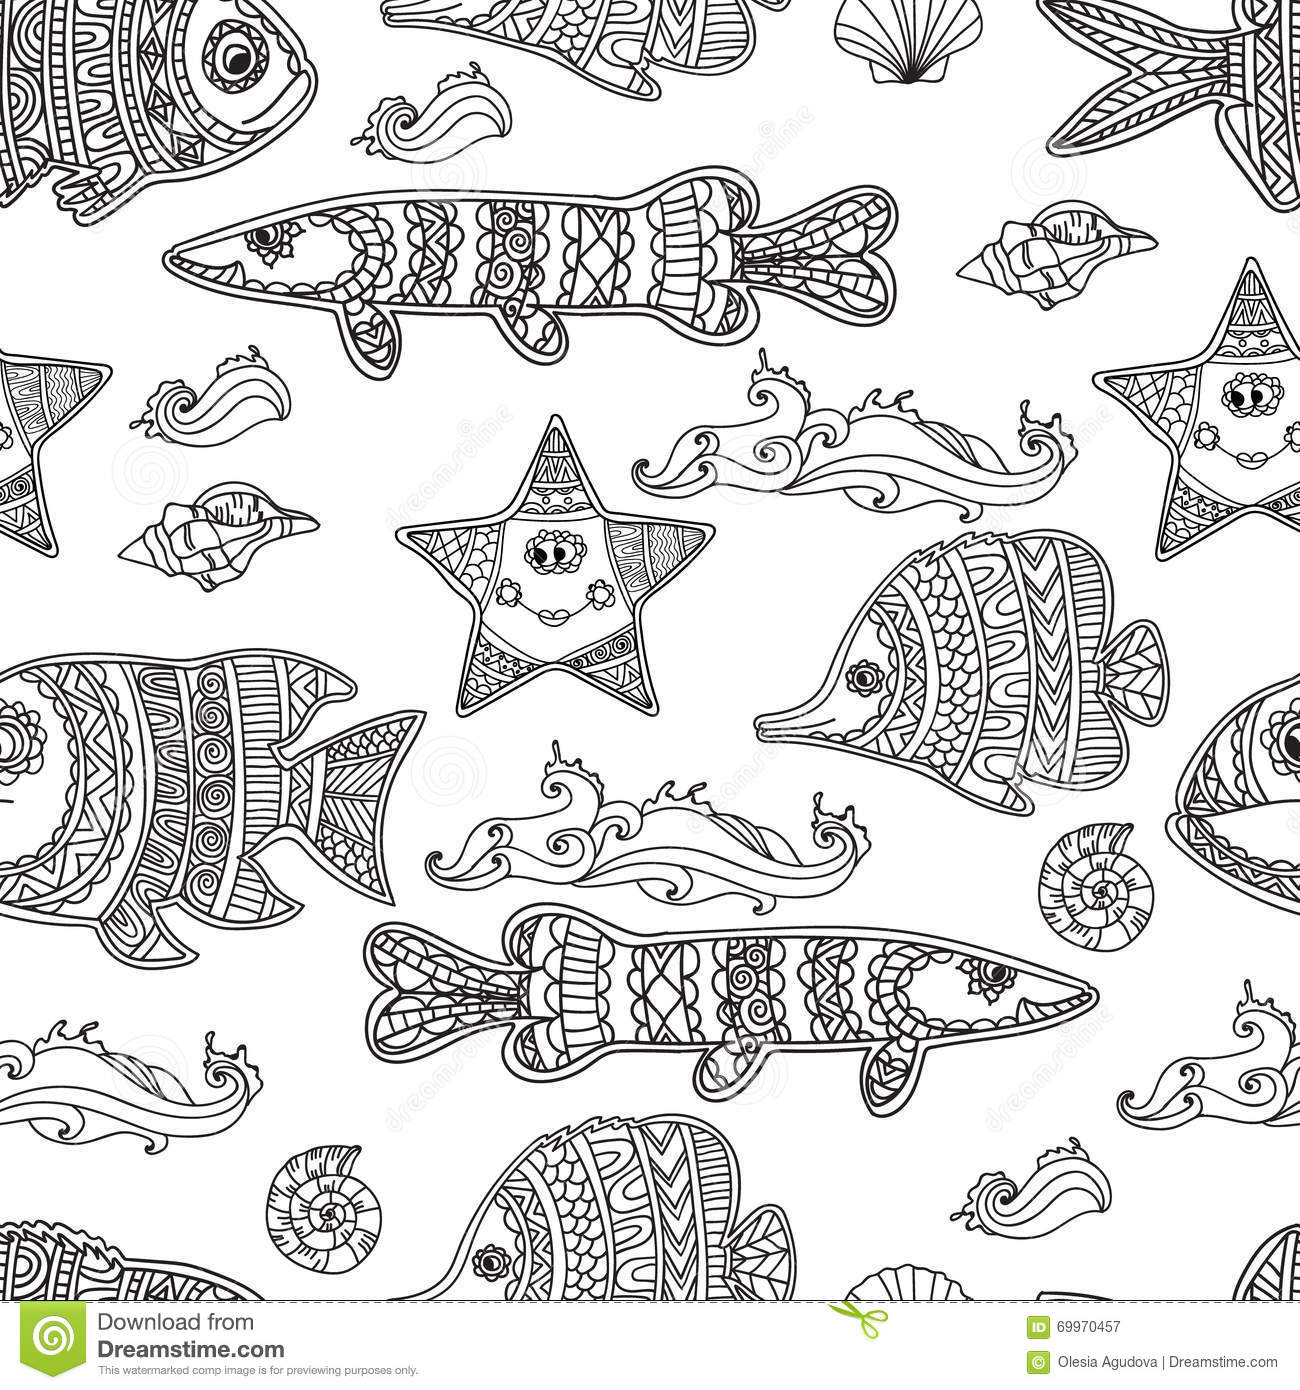 Graves Lighthouse Boston Tim Murray besides Bawa besides Coloring Page 8 Beach Pea Botanical Illustration additionally Stock Illustration Hand Draw Vector Seamless Pattern Ornament Fishes Shells Waves Coloring Page Adults Coloring Book Image69970457 together with Stock Illustration Boat Sea Hand Drawn Doodles Set Sailboats Ocean Life Other Related Objects Image51678498. on lighthouse plans and drawings